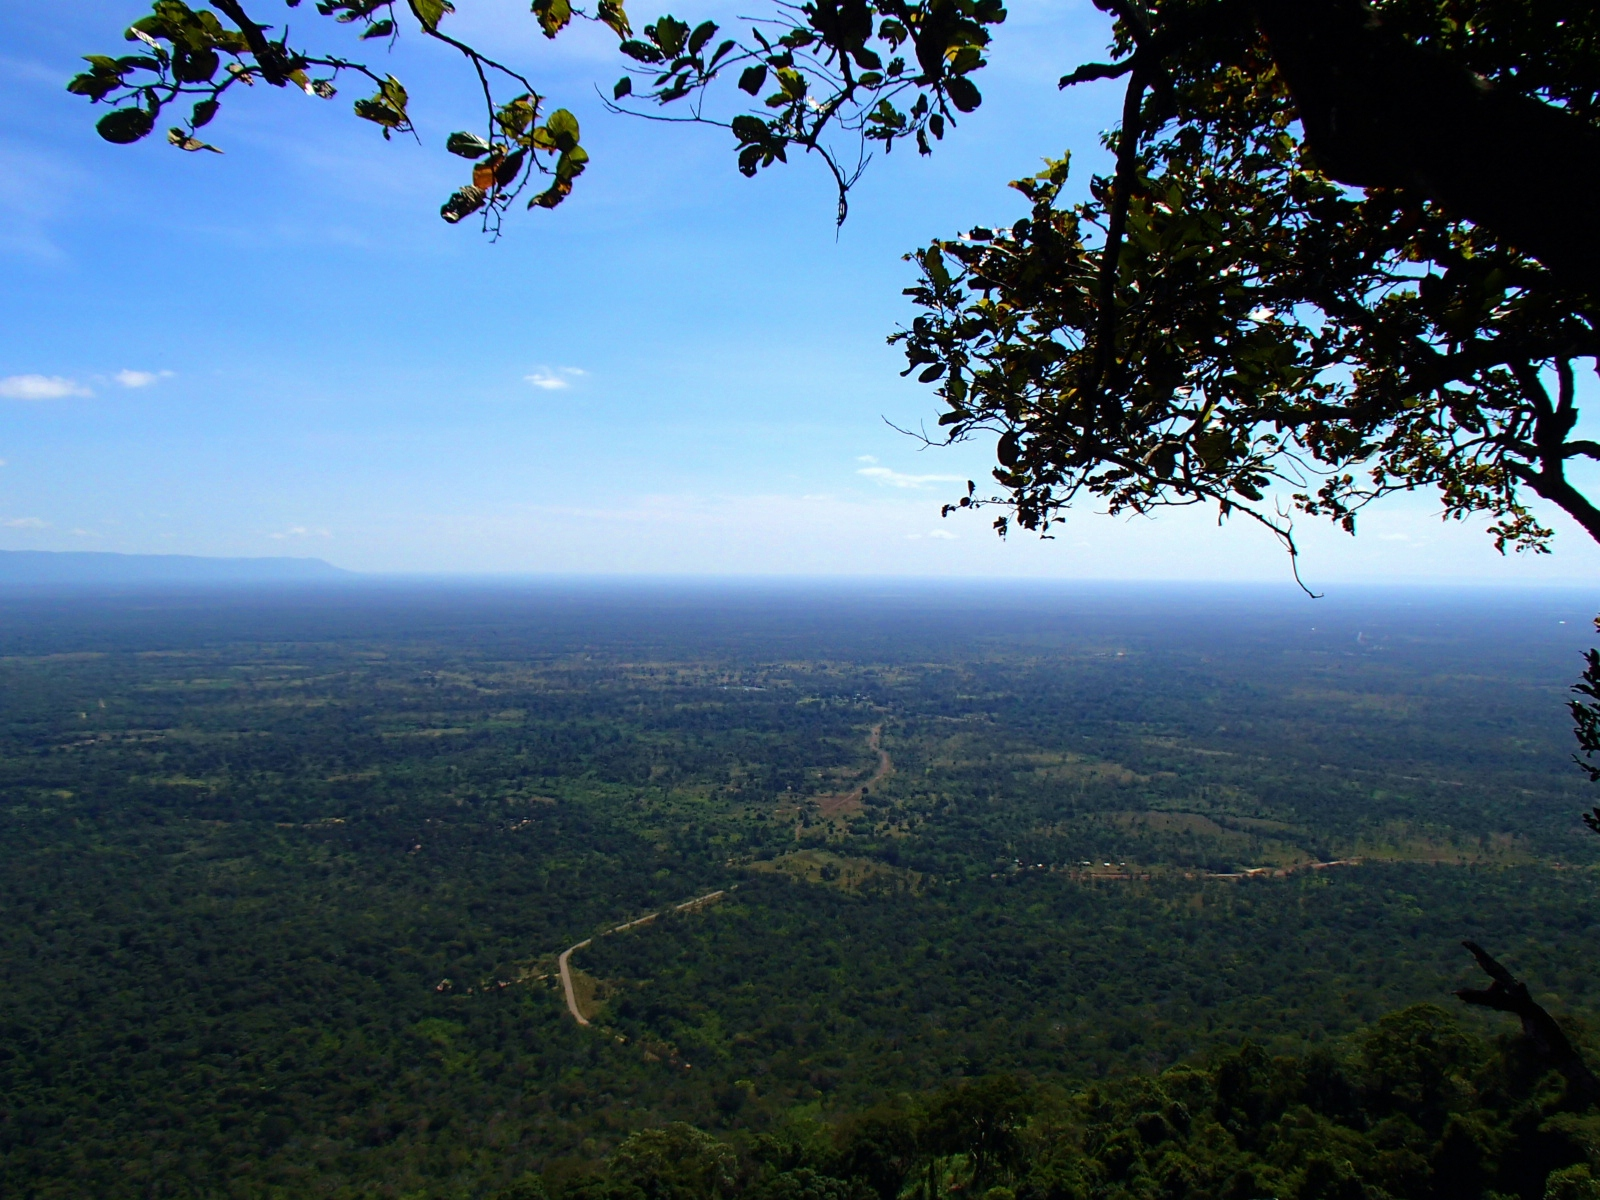 The view look from Preah Vihear temple